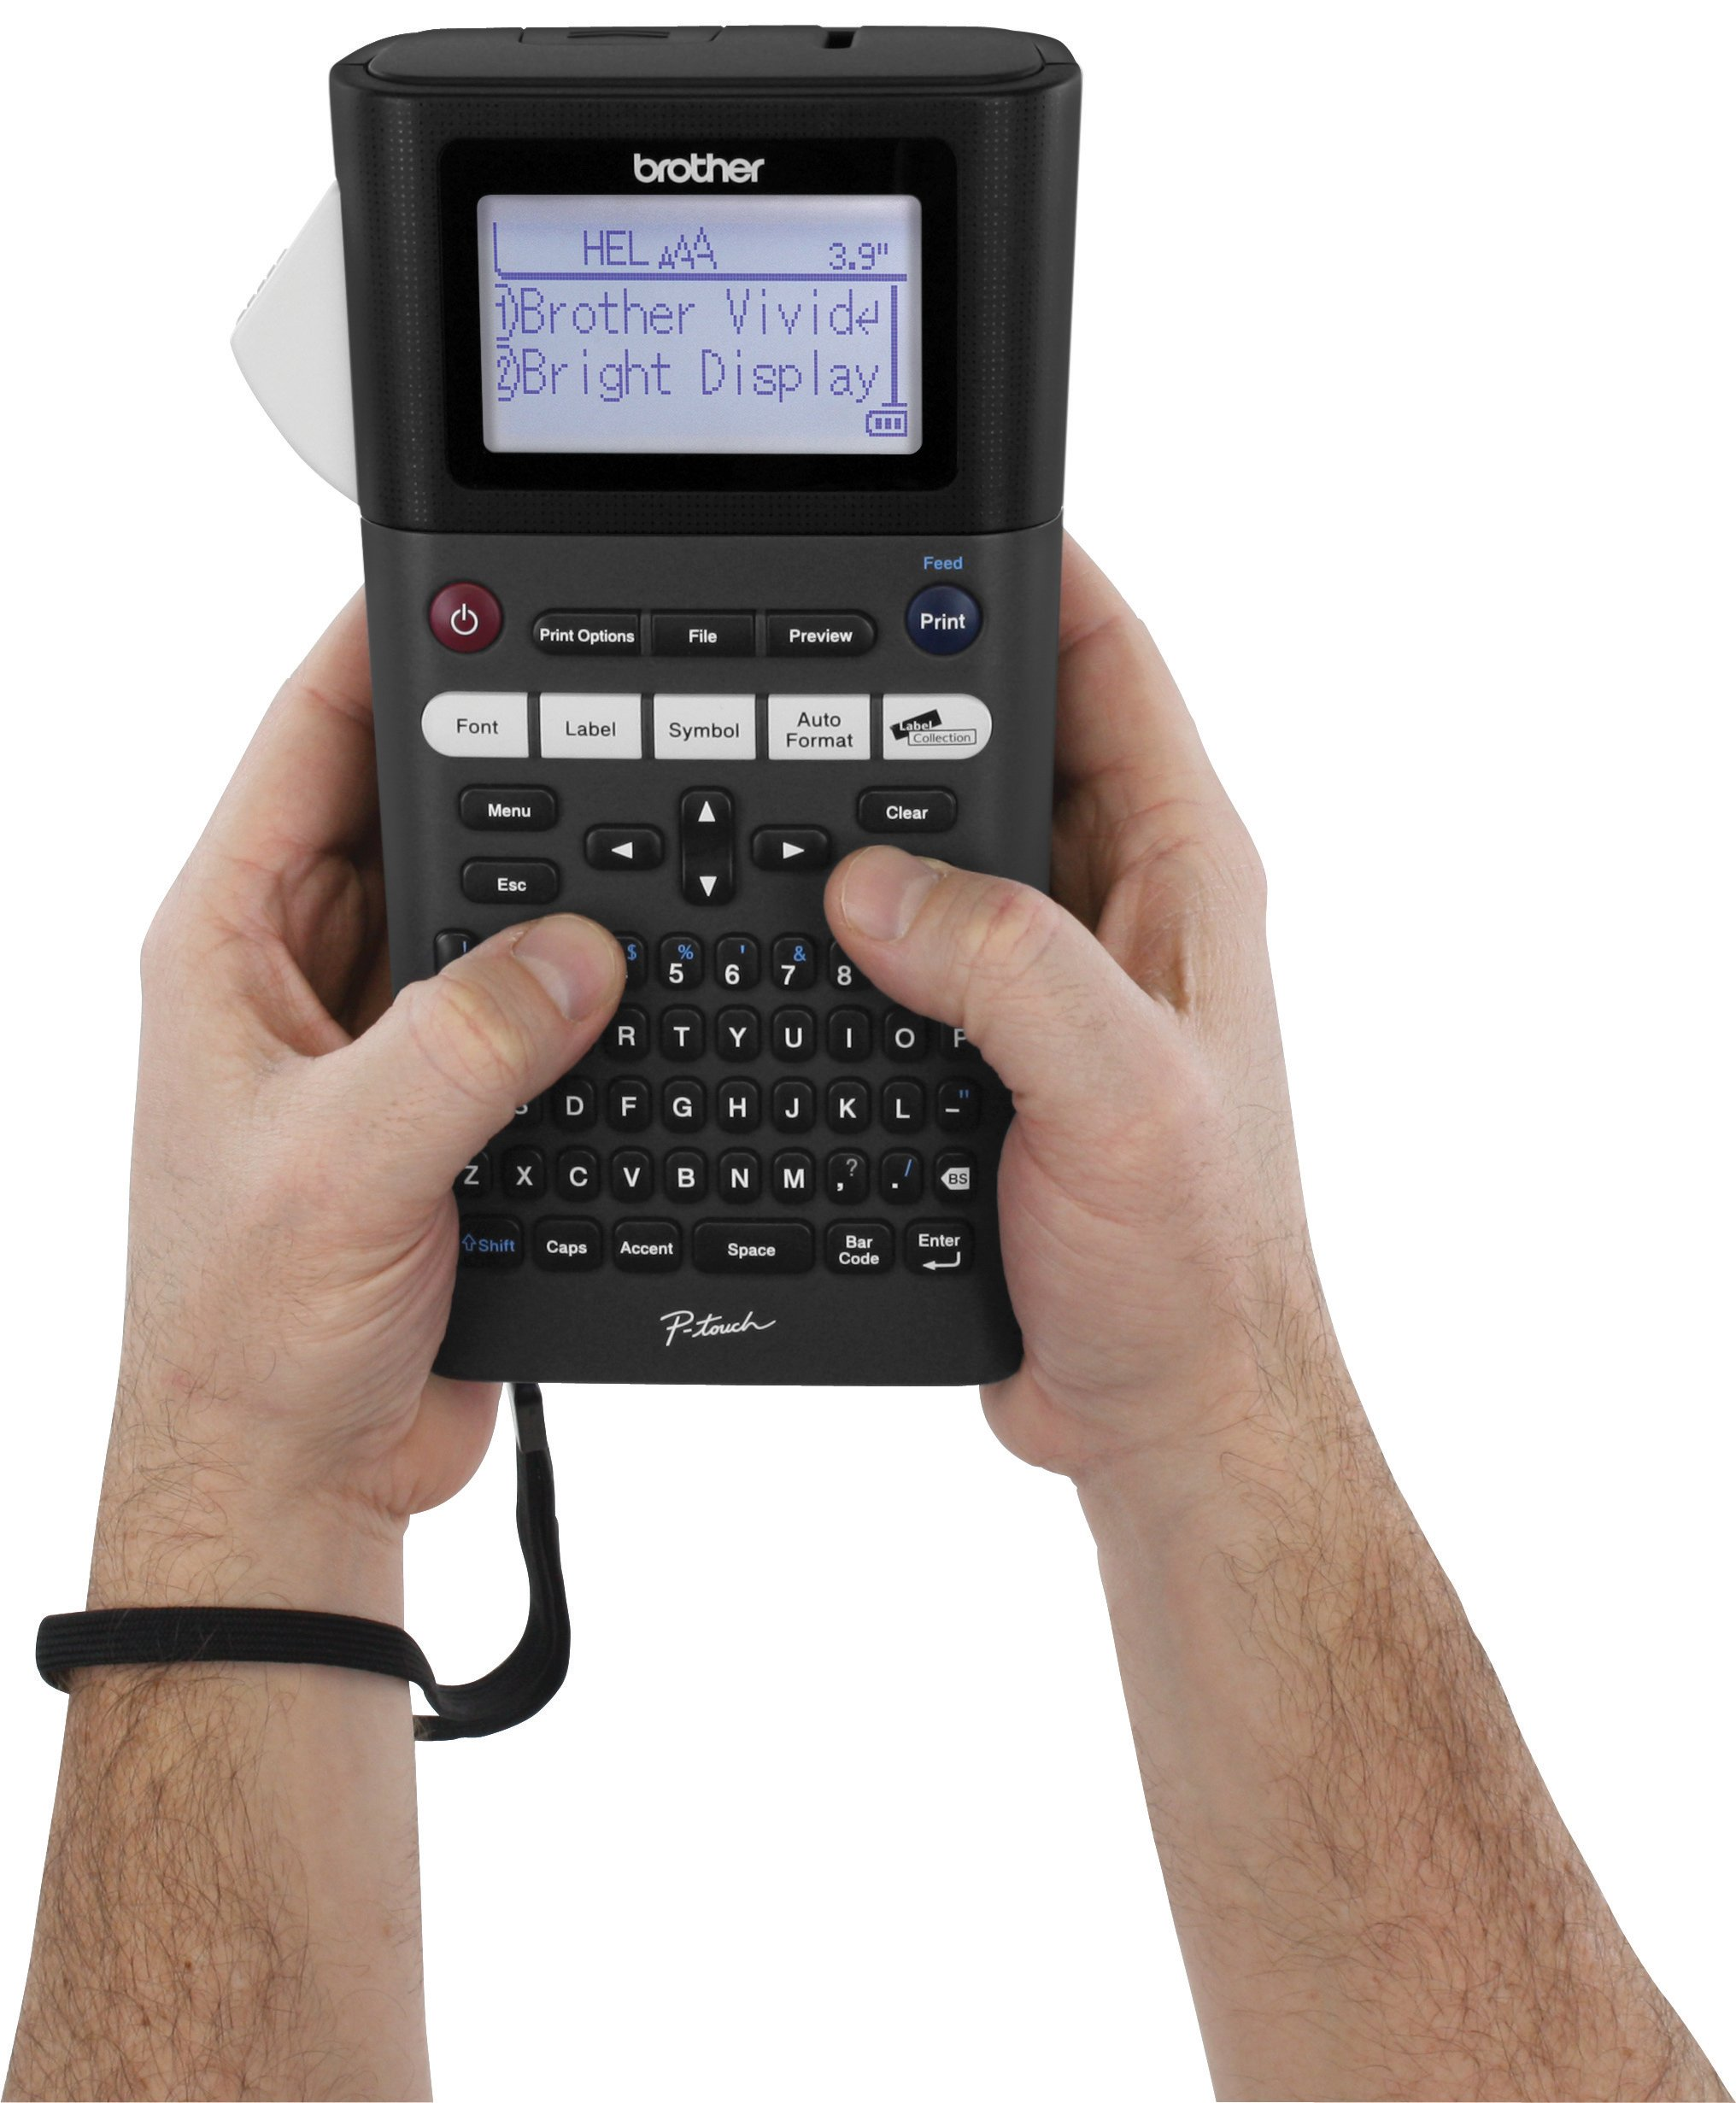 Brother P-touch, PTH300LI, Rechargeable Portable Label Maker, One-Touch Formatting, Vivid Bright Display, Fast Printing Speeds, Black